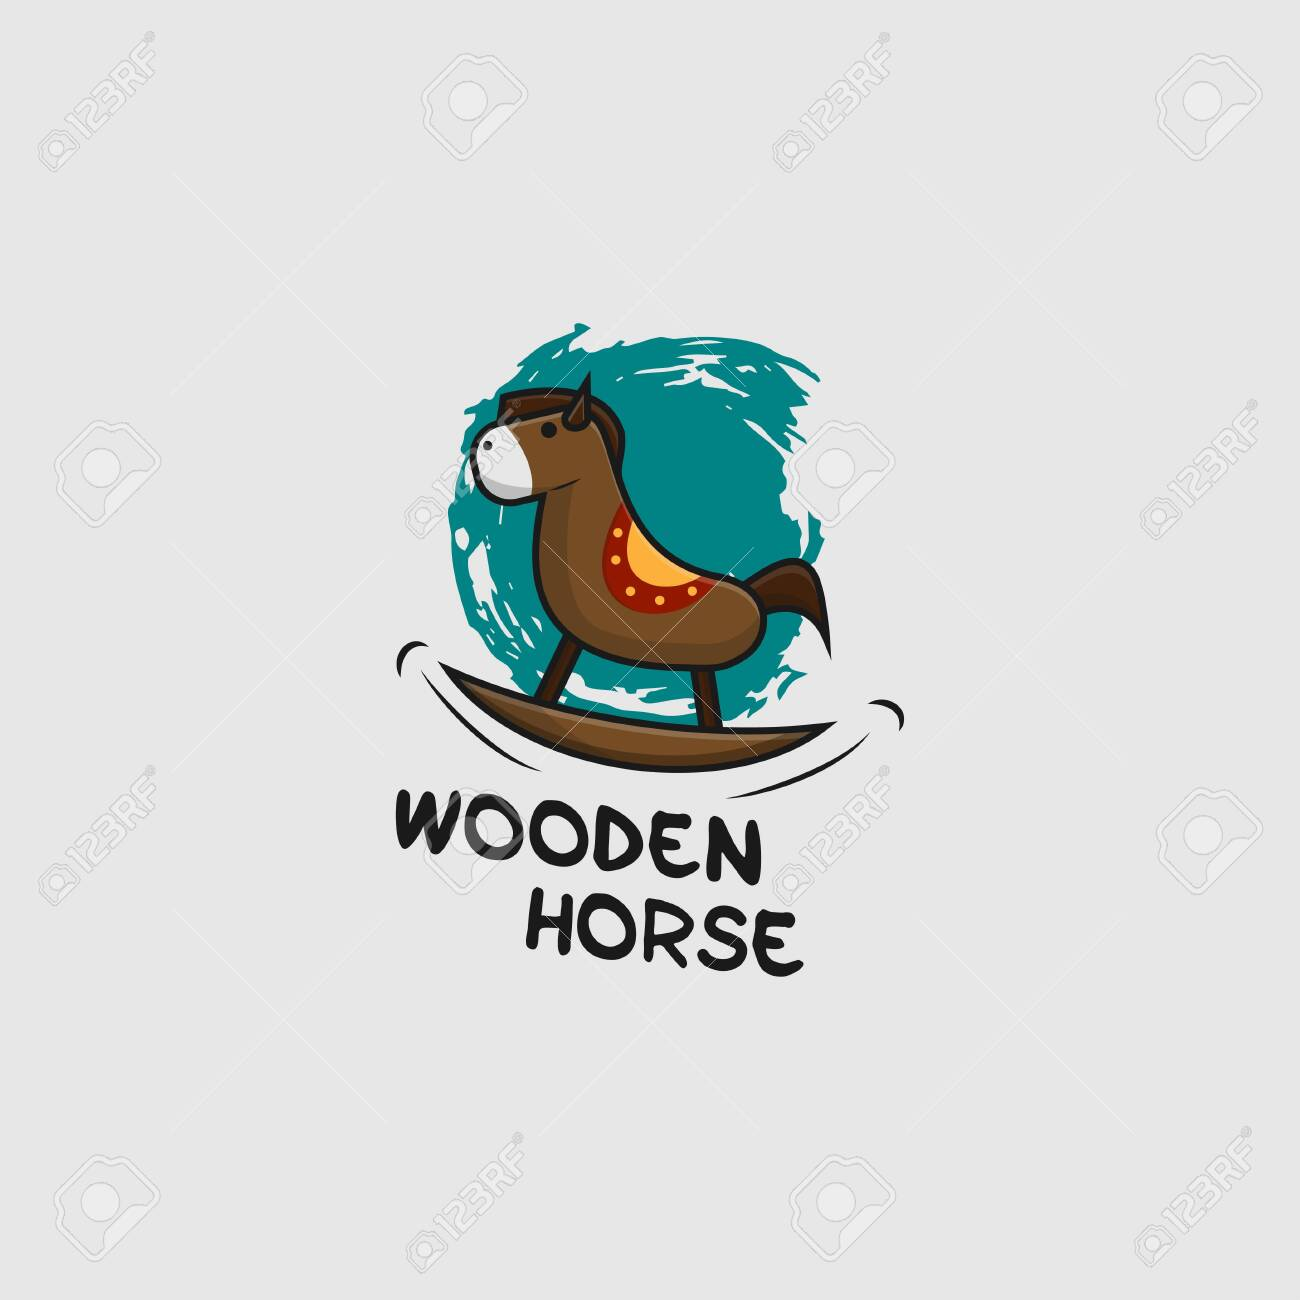 Icon Logo Of Wooden Horse Toy Royalty Free Cliparts Vectors And Stock Illustration Image 129831743